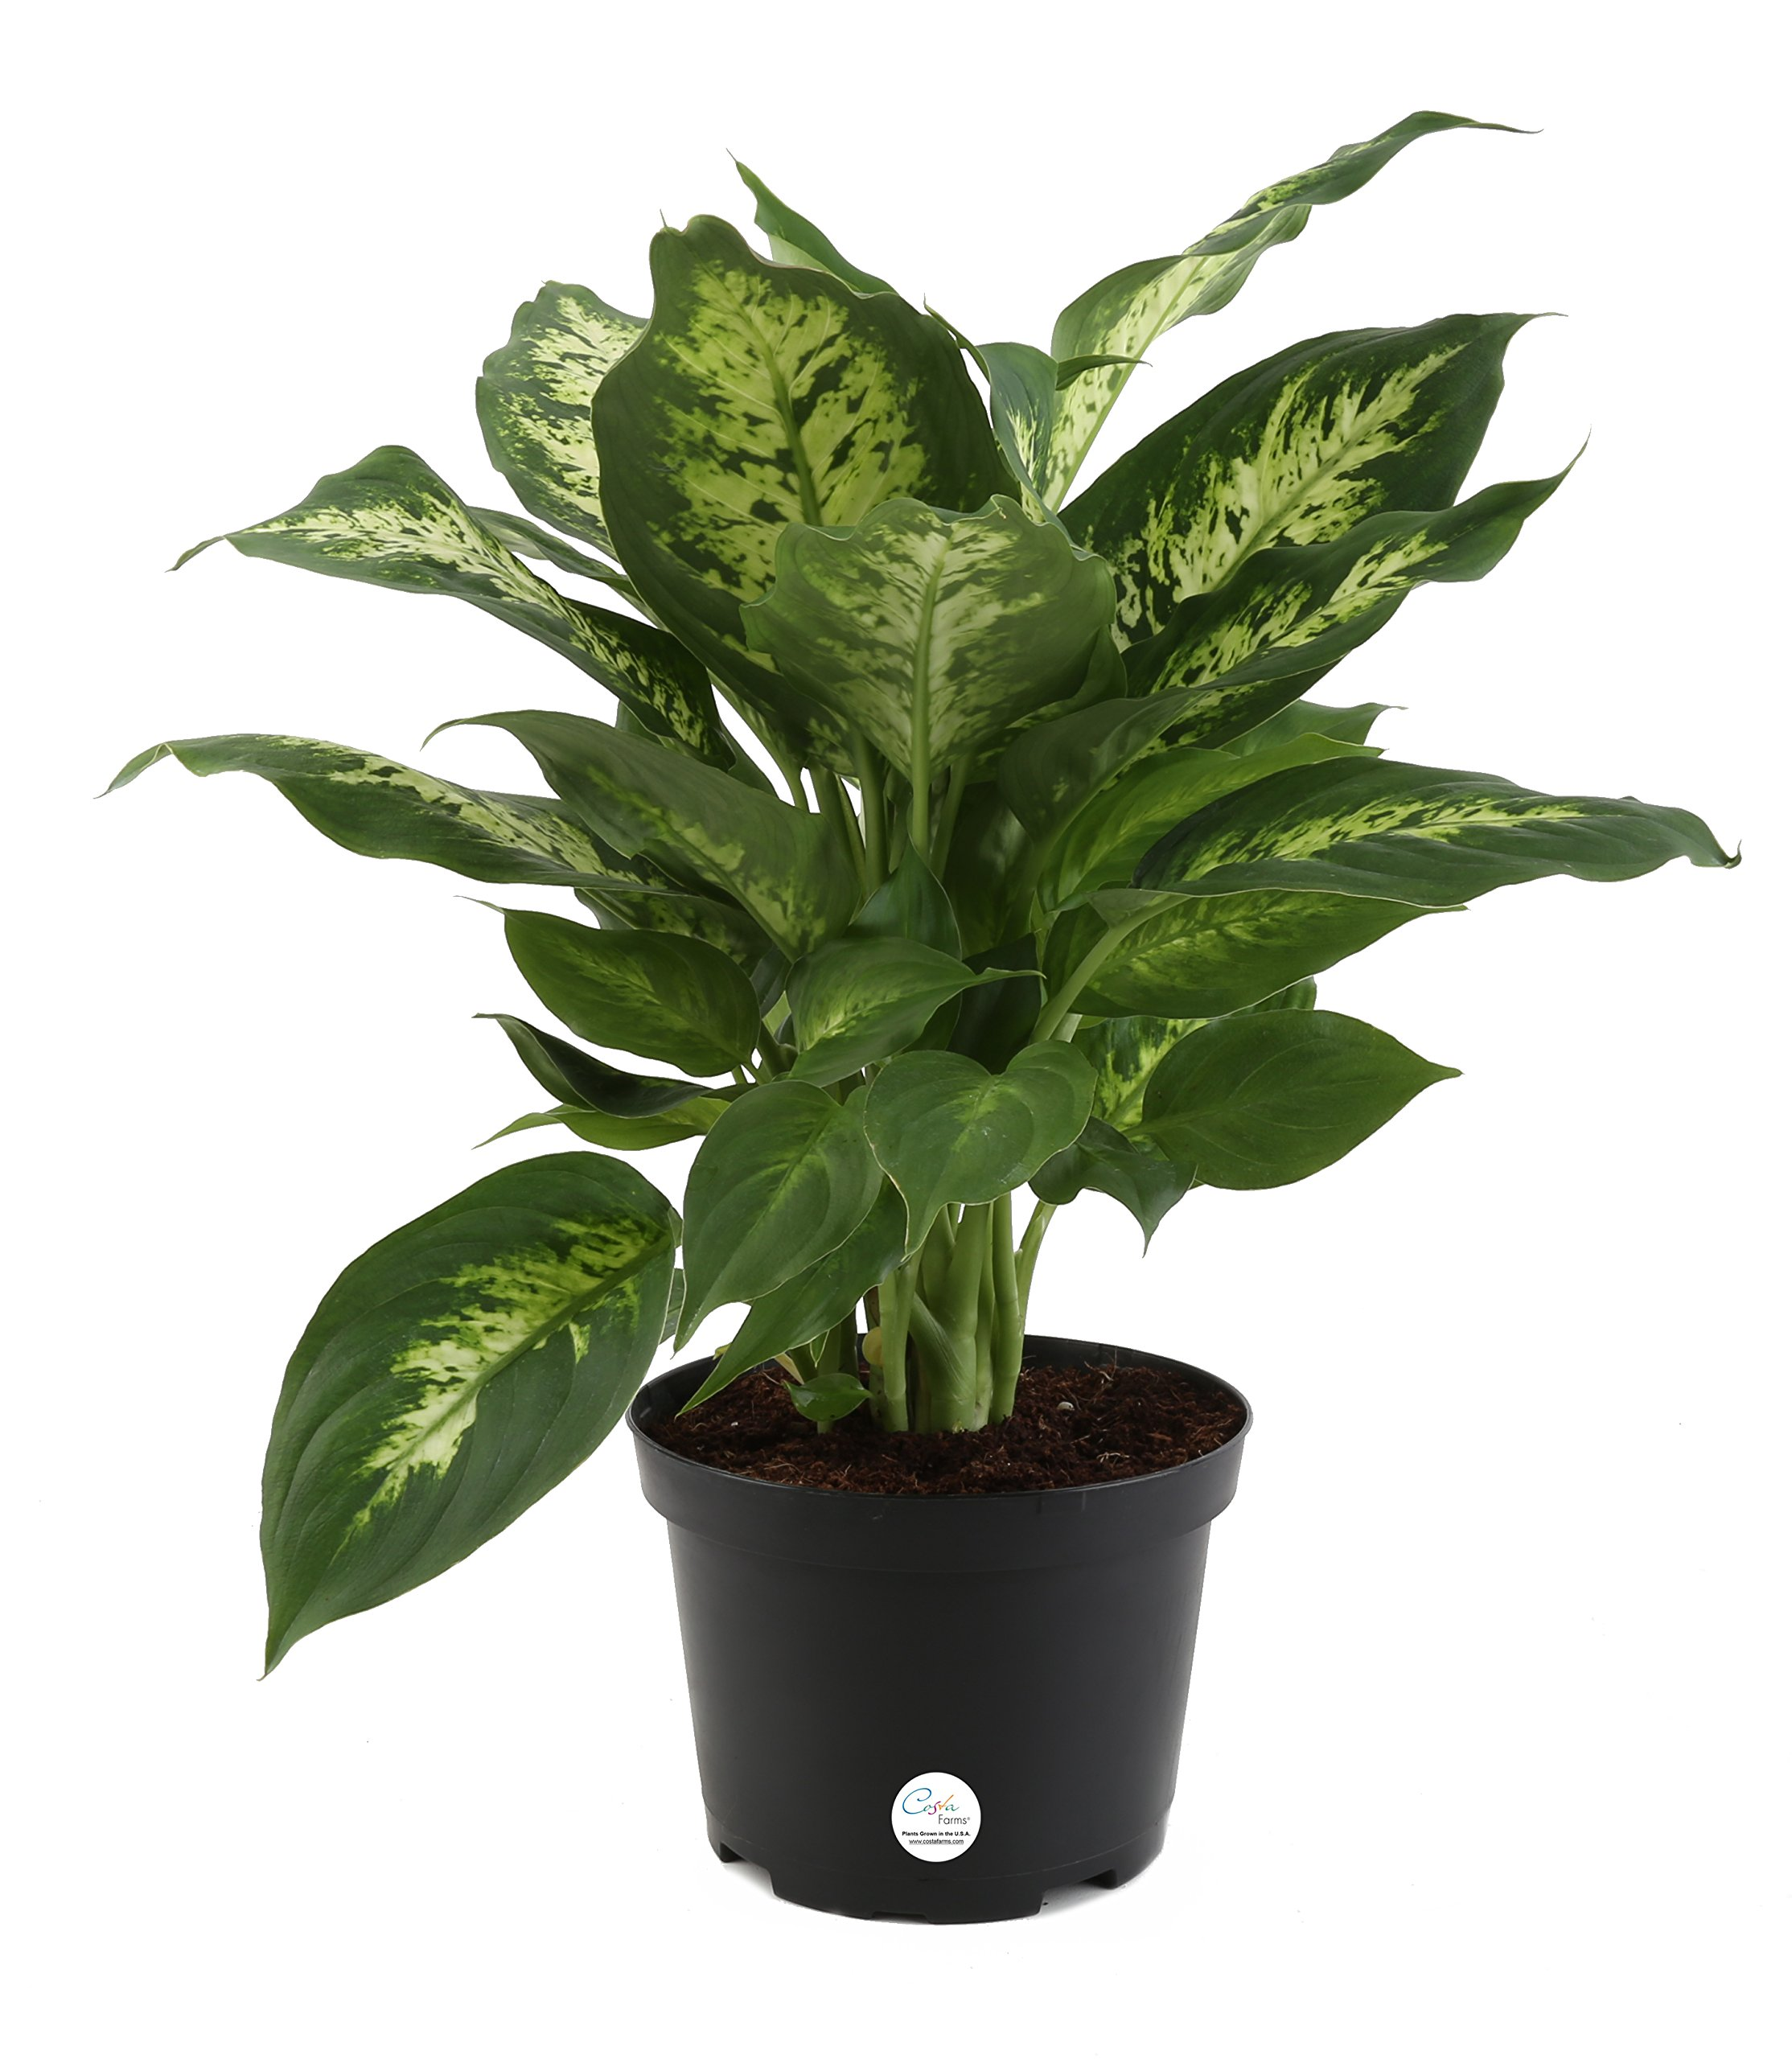 Costa Farms, Premium Live Indoor Exotica Dumb Cane, Dieffenbachia, Tabletop Plant, Grower Pot, Shipped Fresh From Our Farm, Excellent Gift